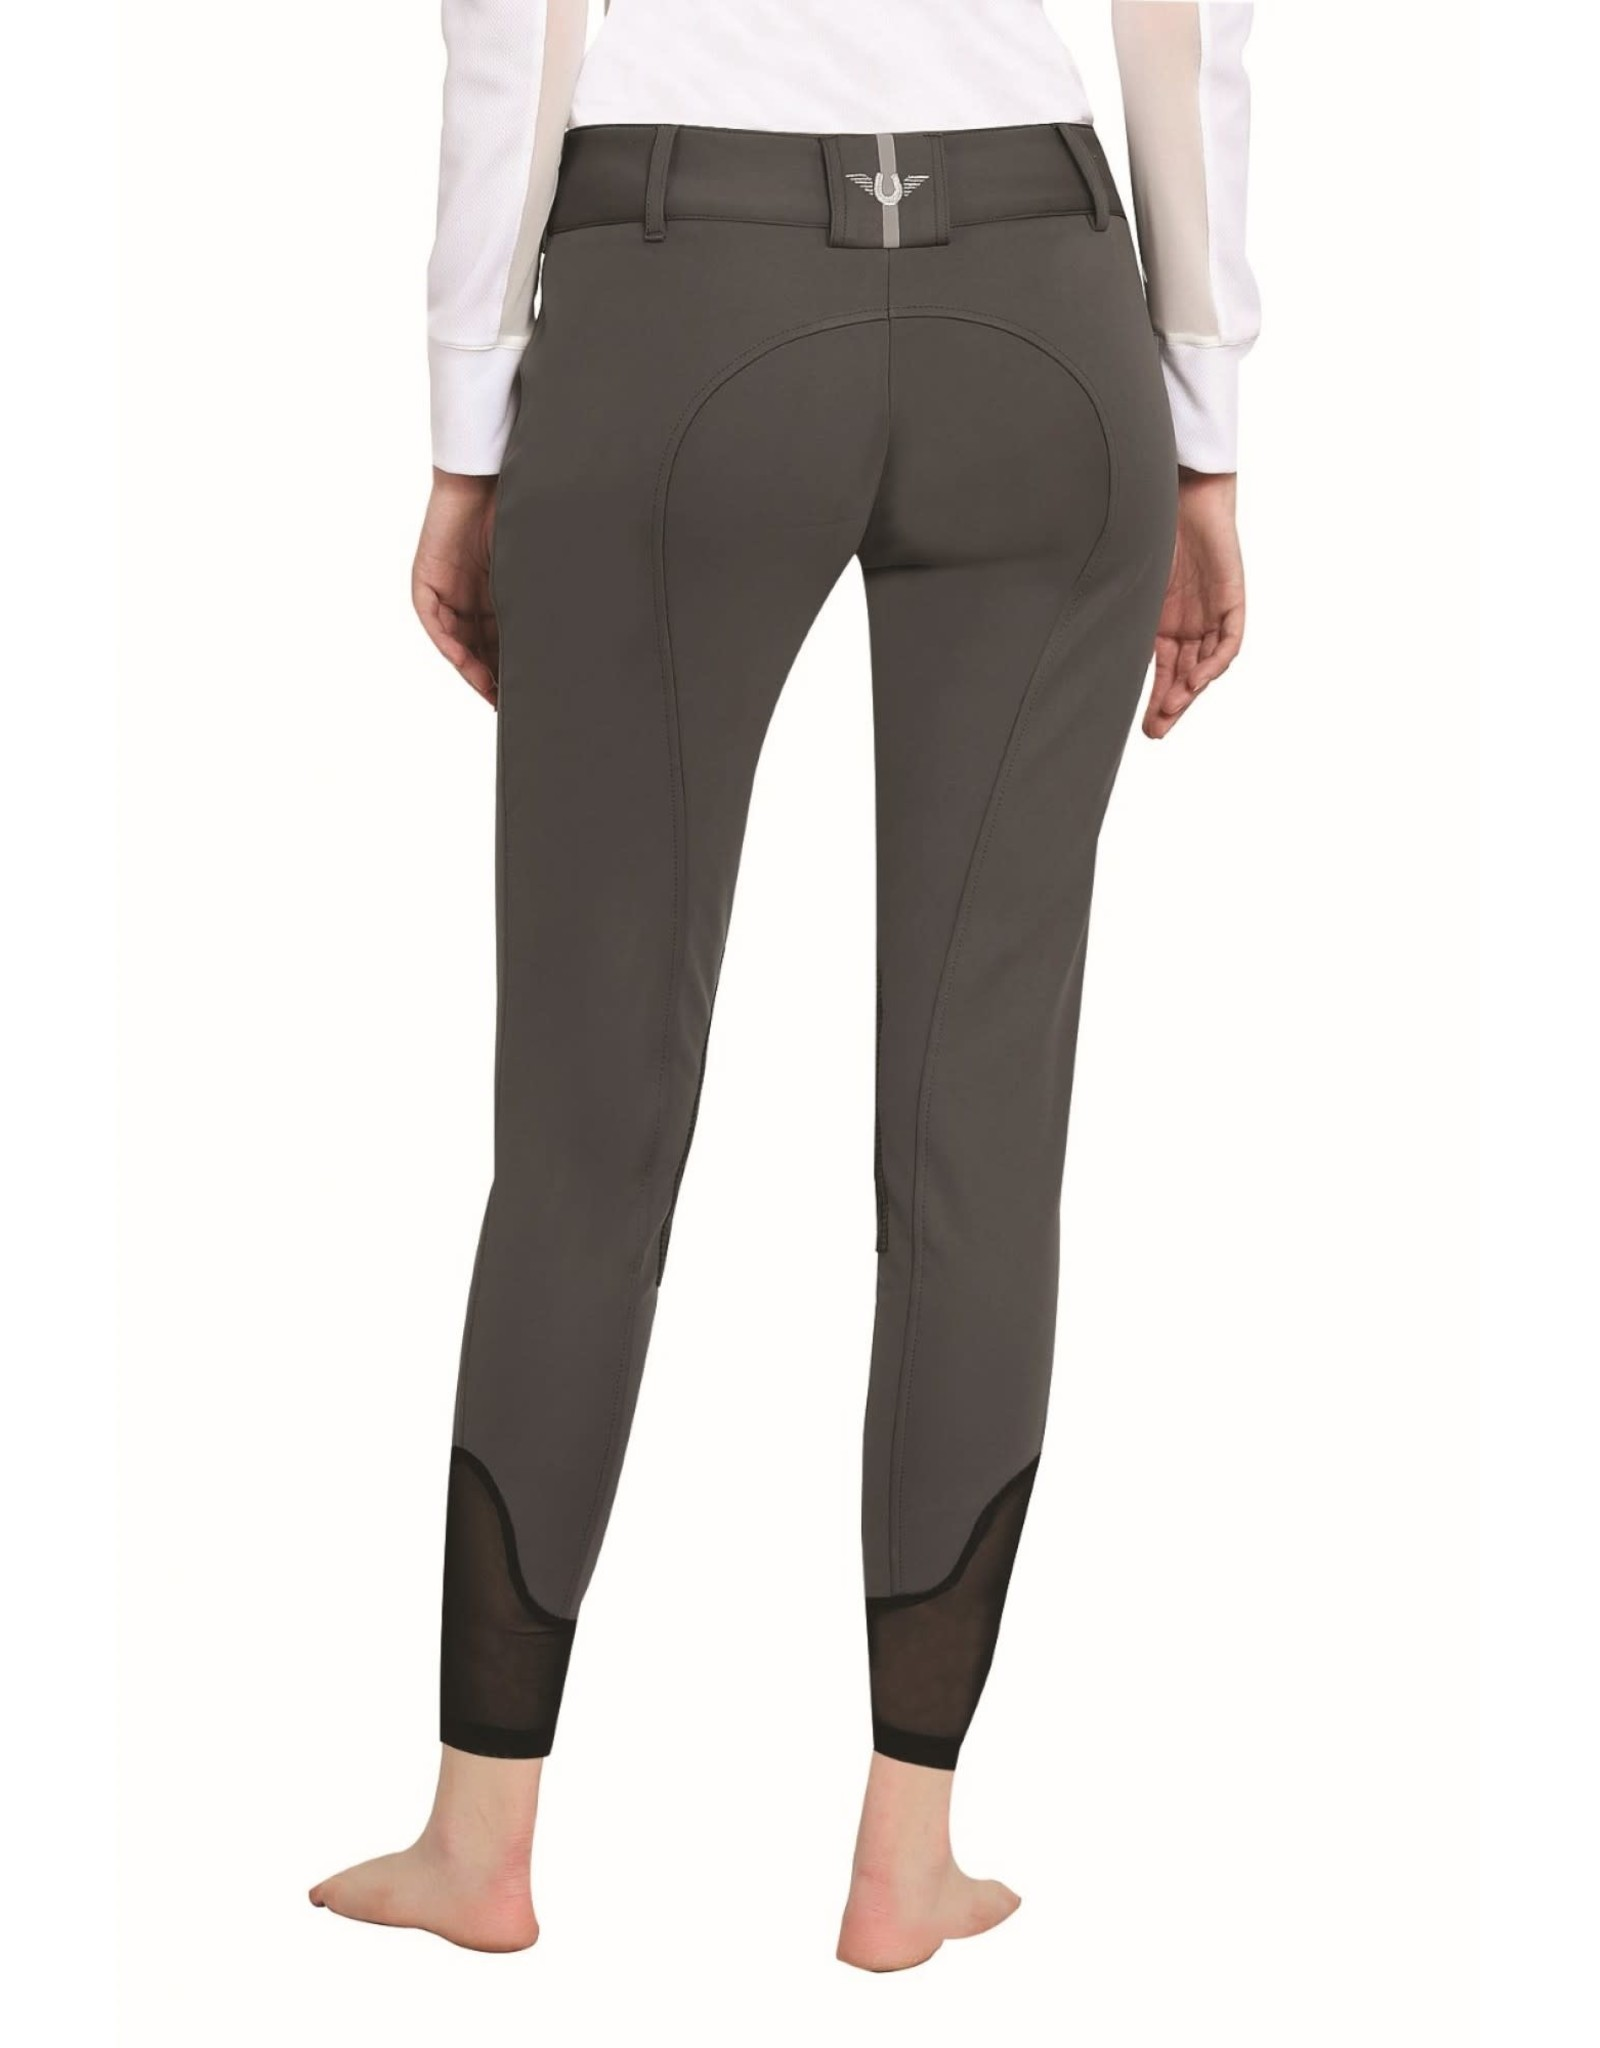 TUFFRIDER LADIES YETI SOFT SHELL KNEE PATCH BREECHES